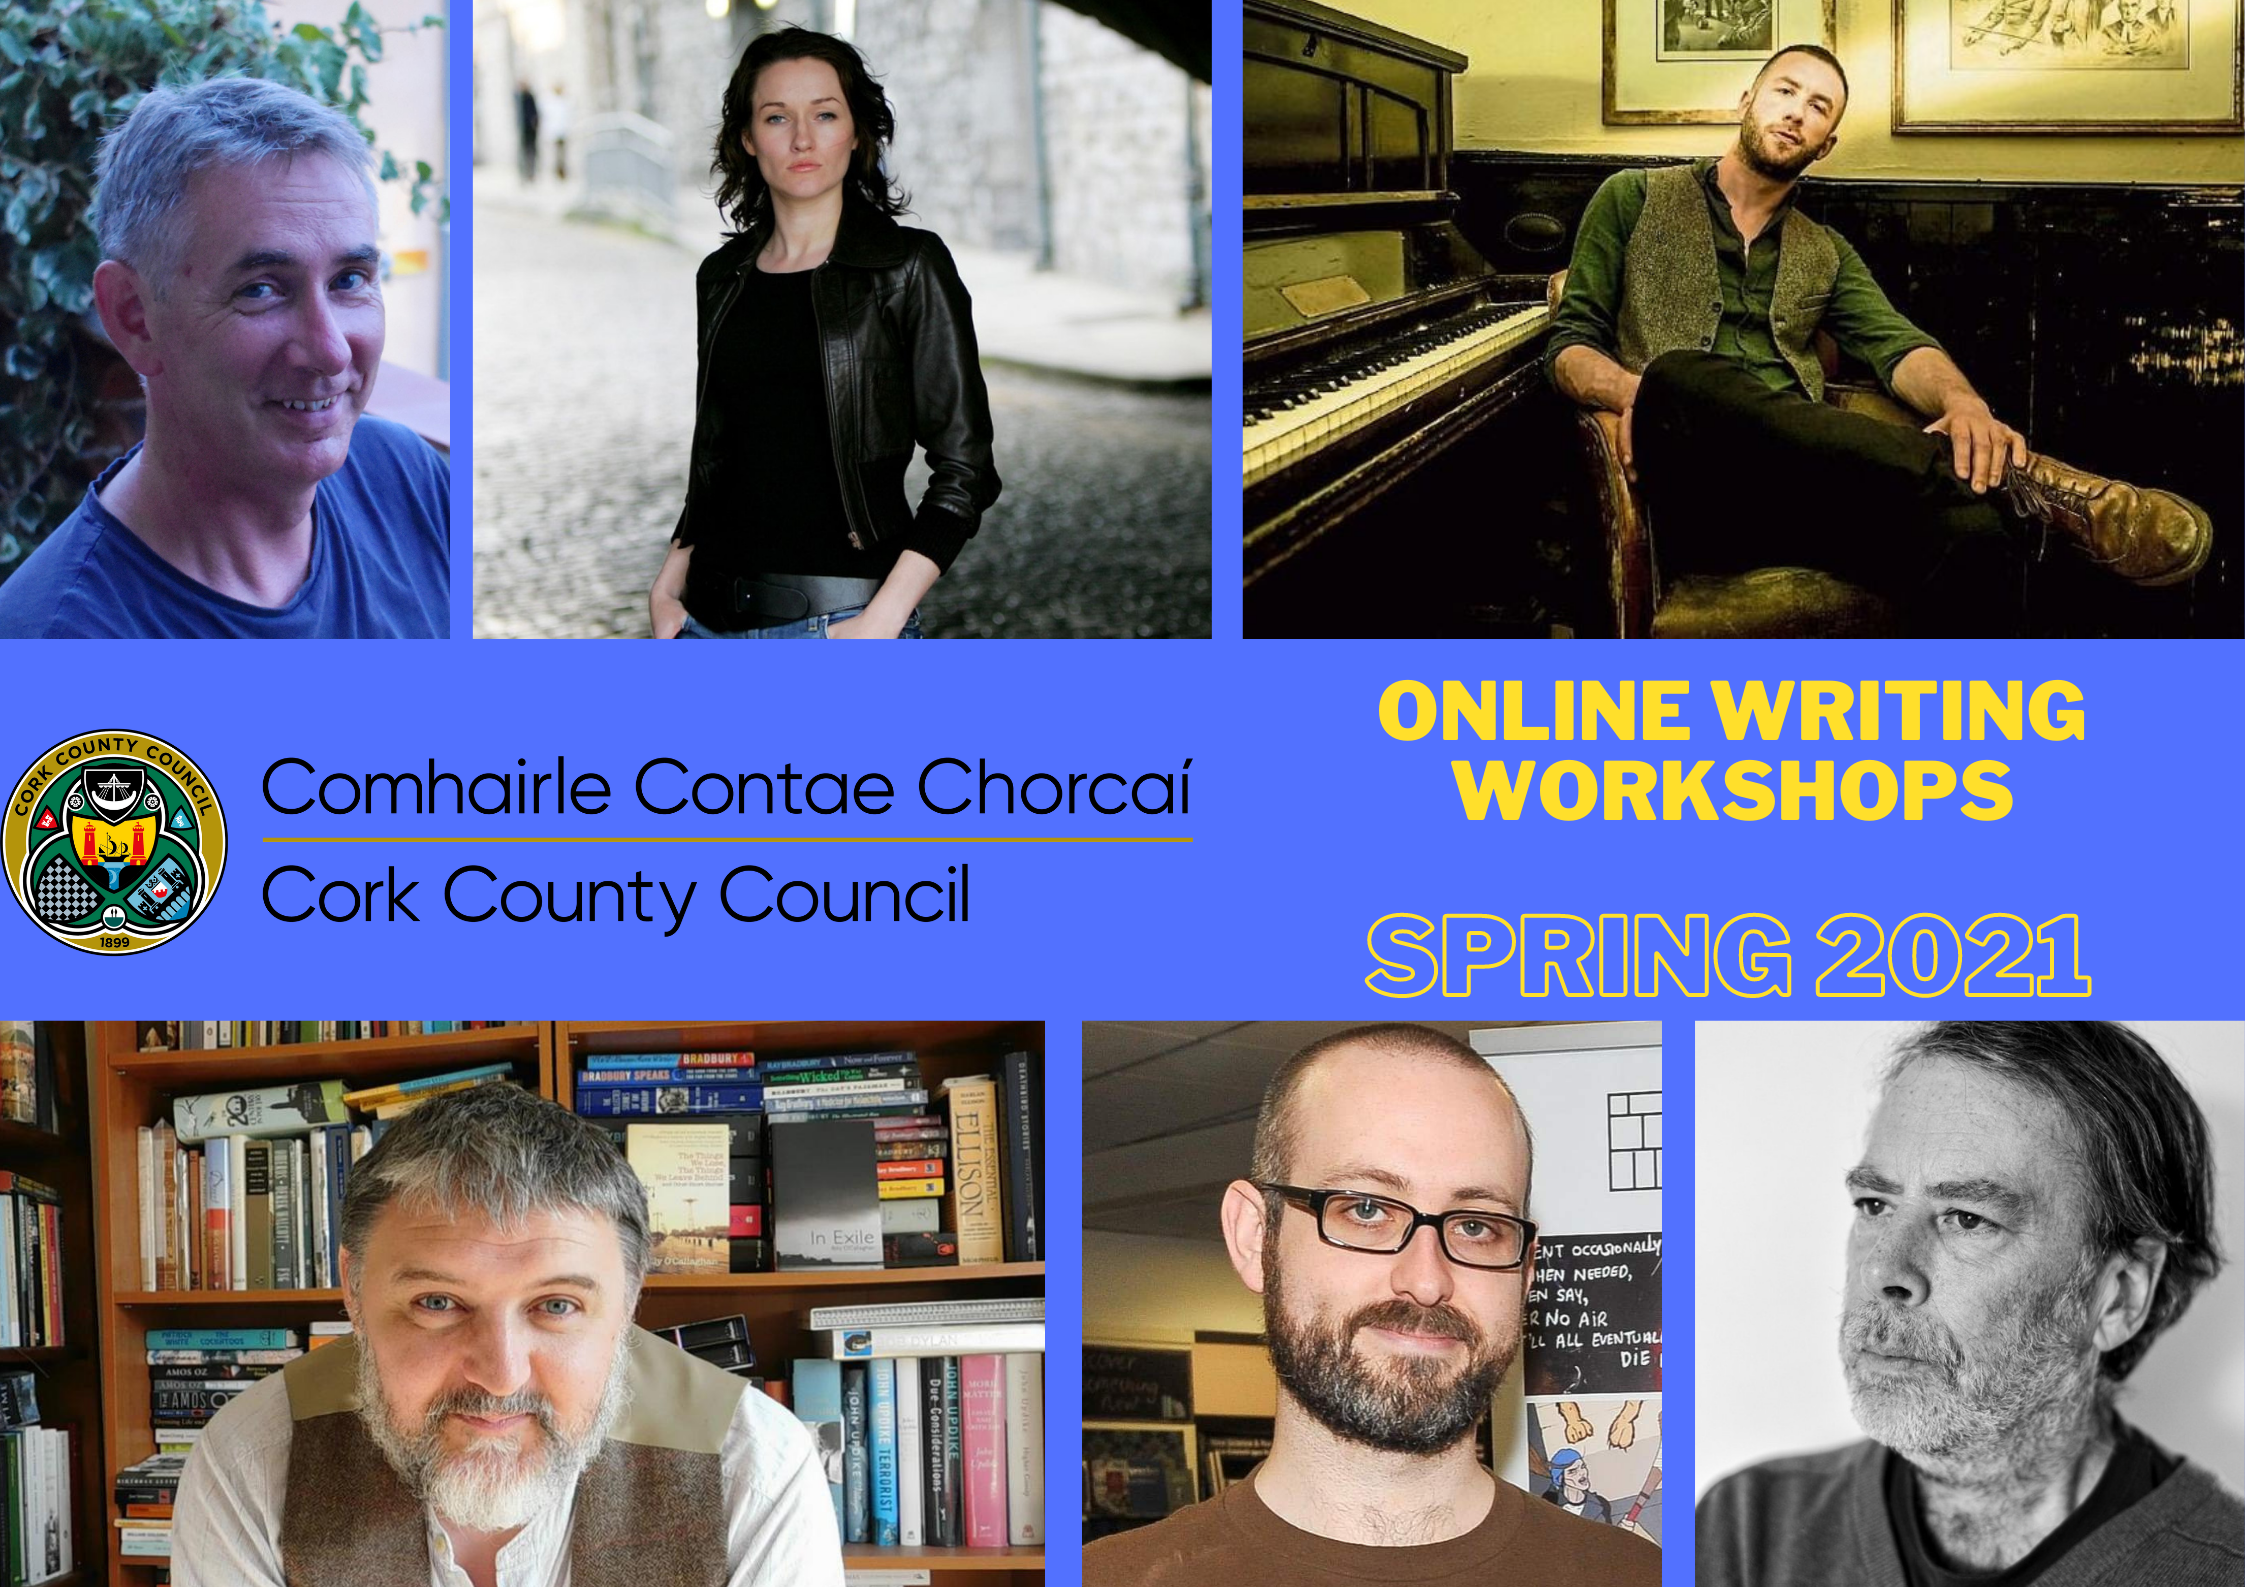 Cork County Council Launch Spring Series of Online Writing Workshops